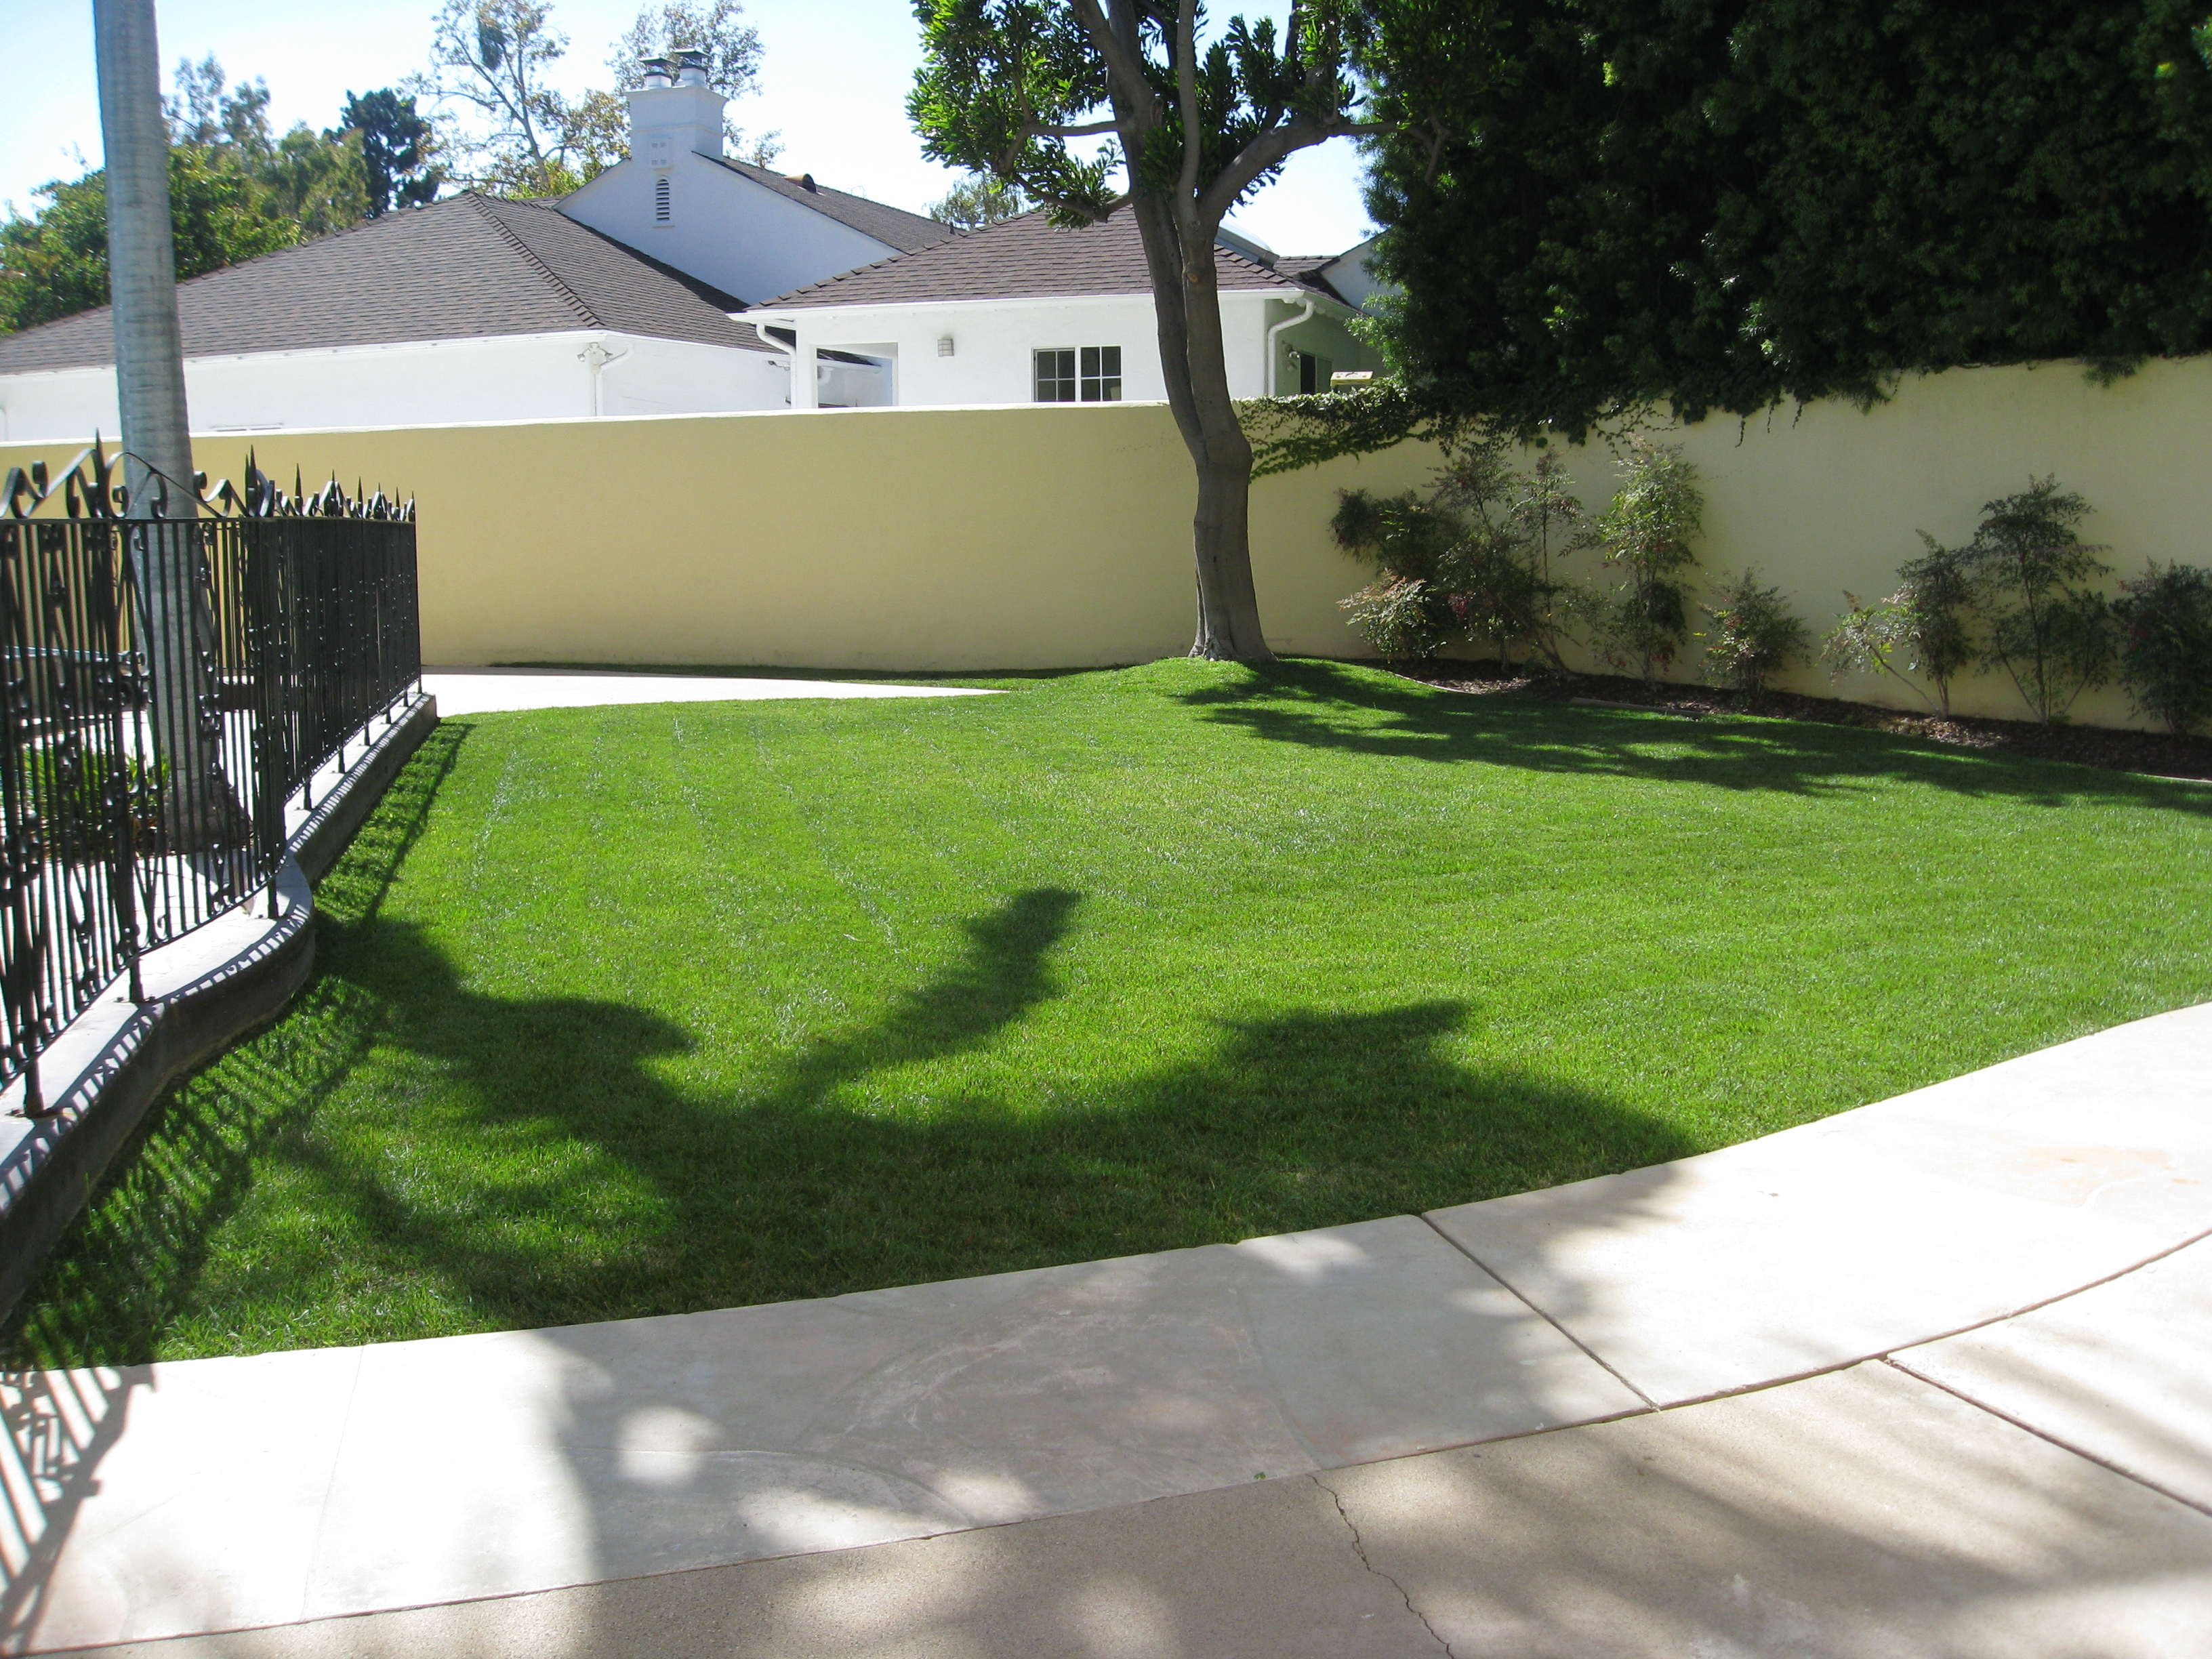 Another lawn bites the dust to make way for a vibrant vegetable garden.